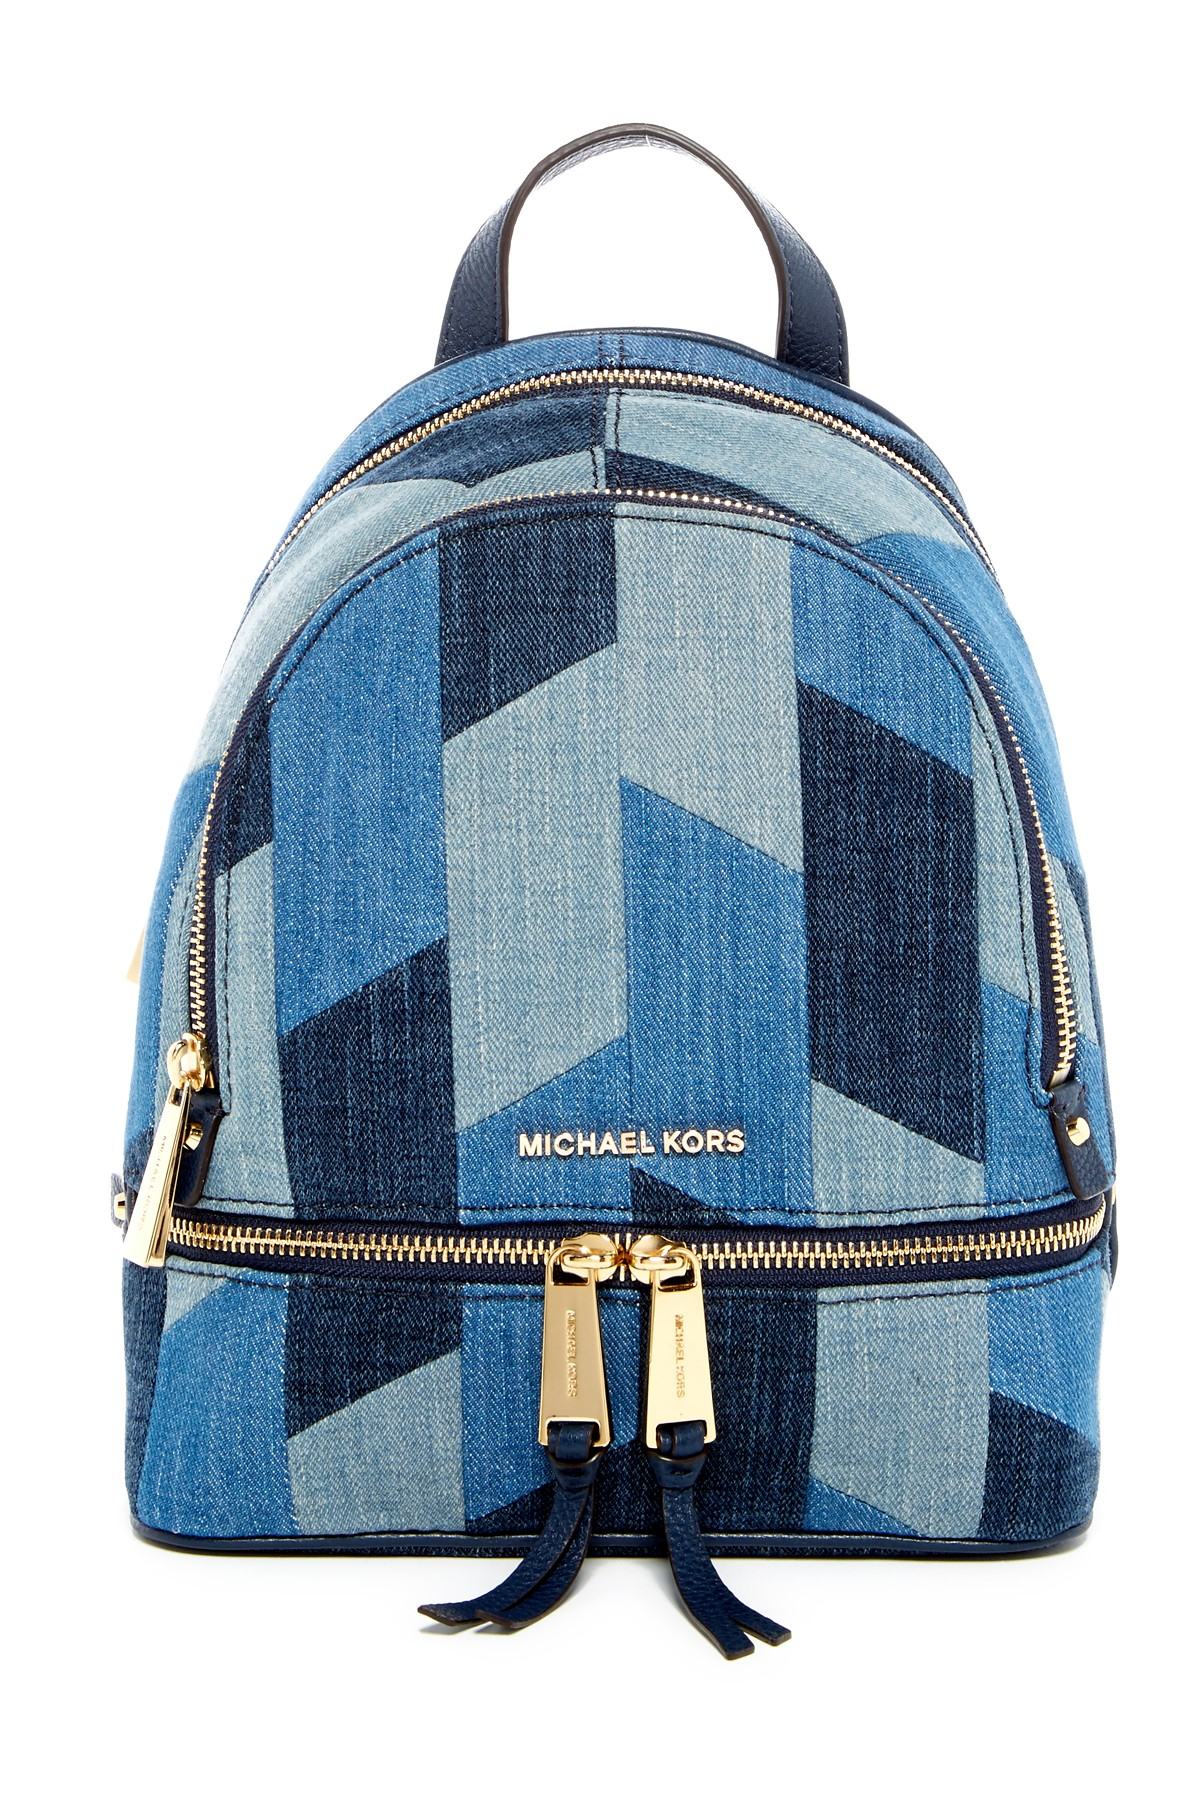 Michael Michael Kors Rhea Small Patchwork Denim Backpack